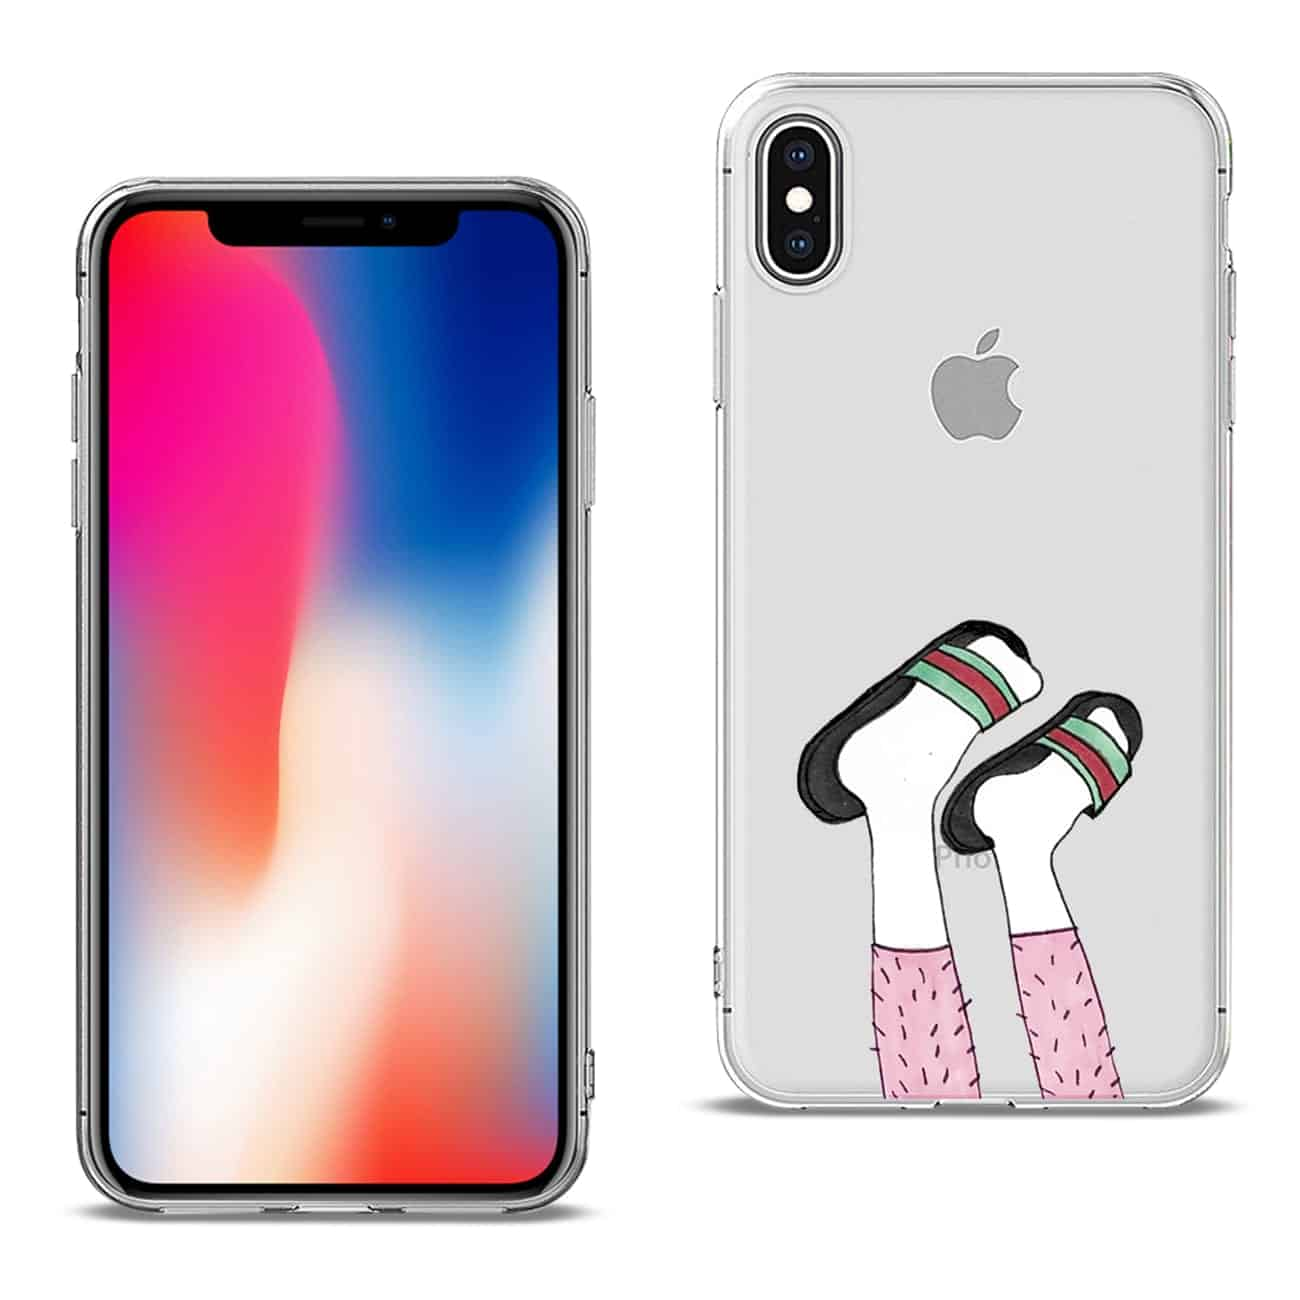 Apple iPhone X Design Air Cushion Case With Feet in White